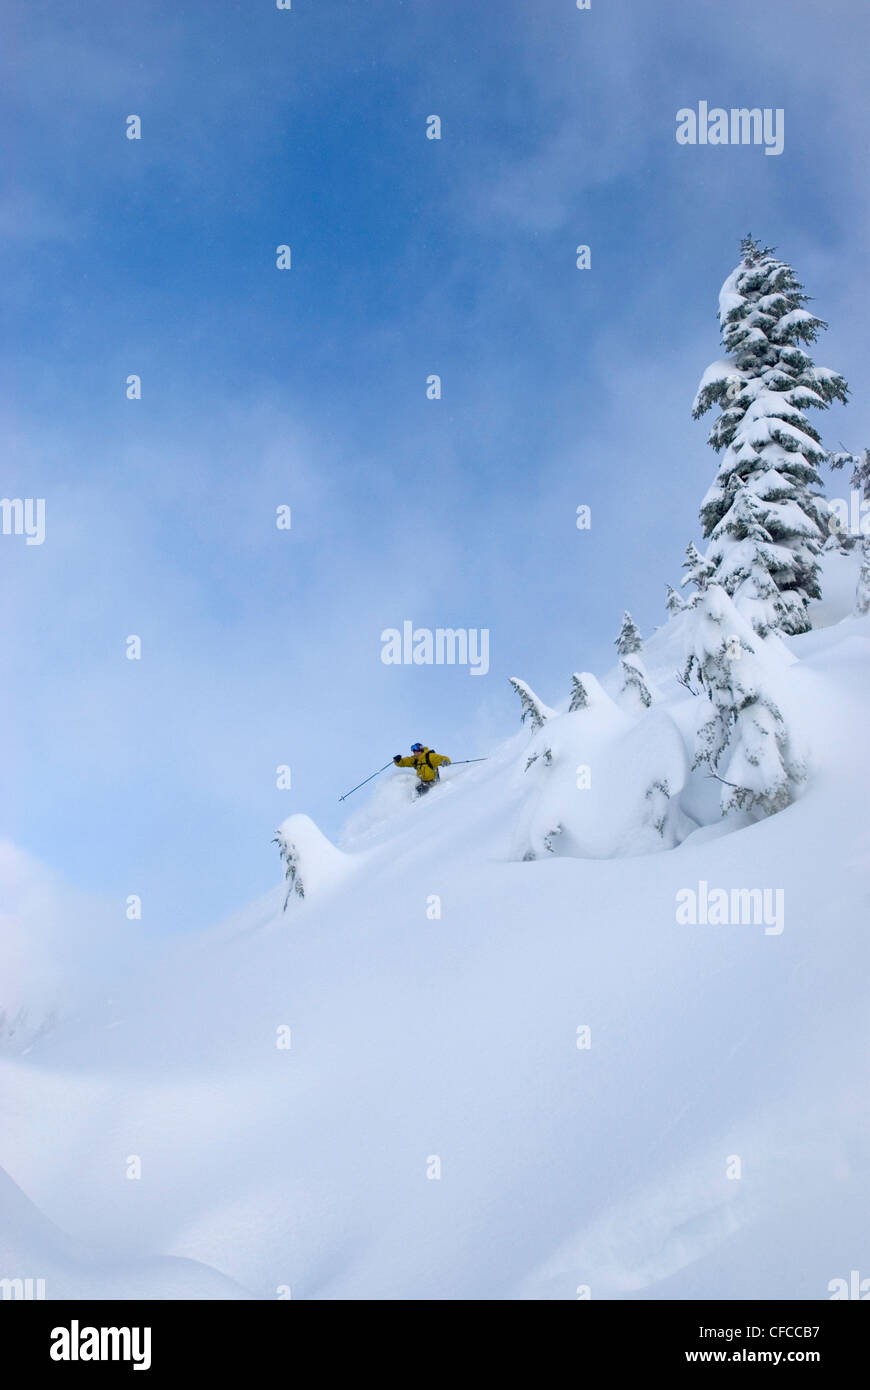 A mid adult man carving some deep turns in the Mt Baker backcountry Snoqualmie National Forest WA USA - Stock Image